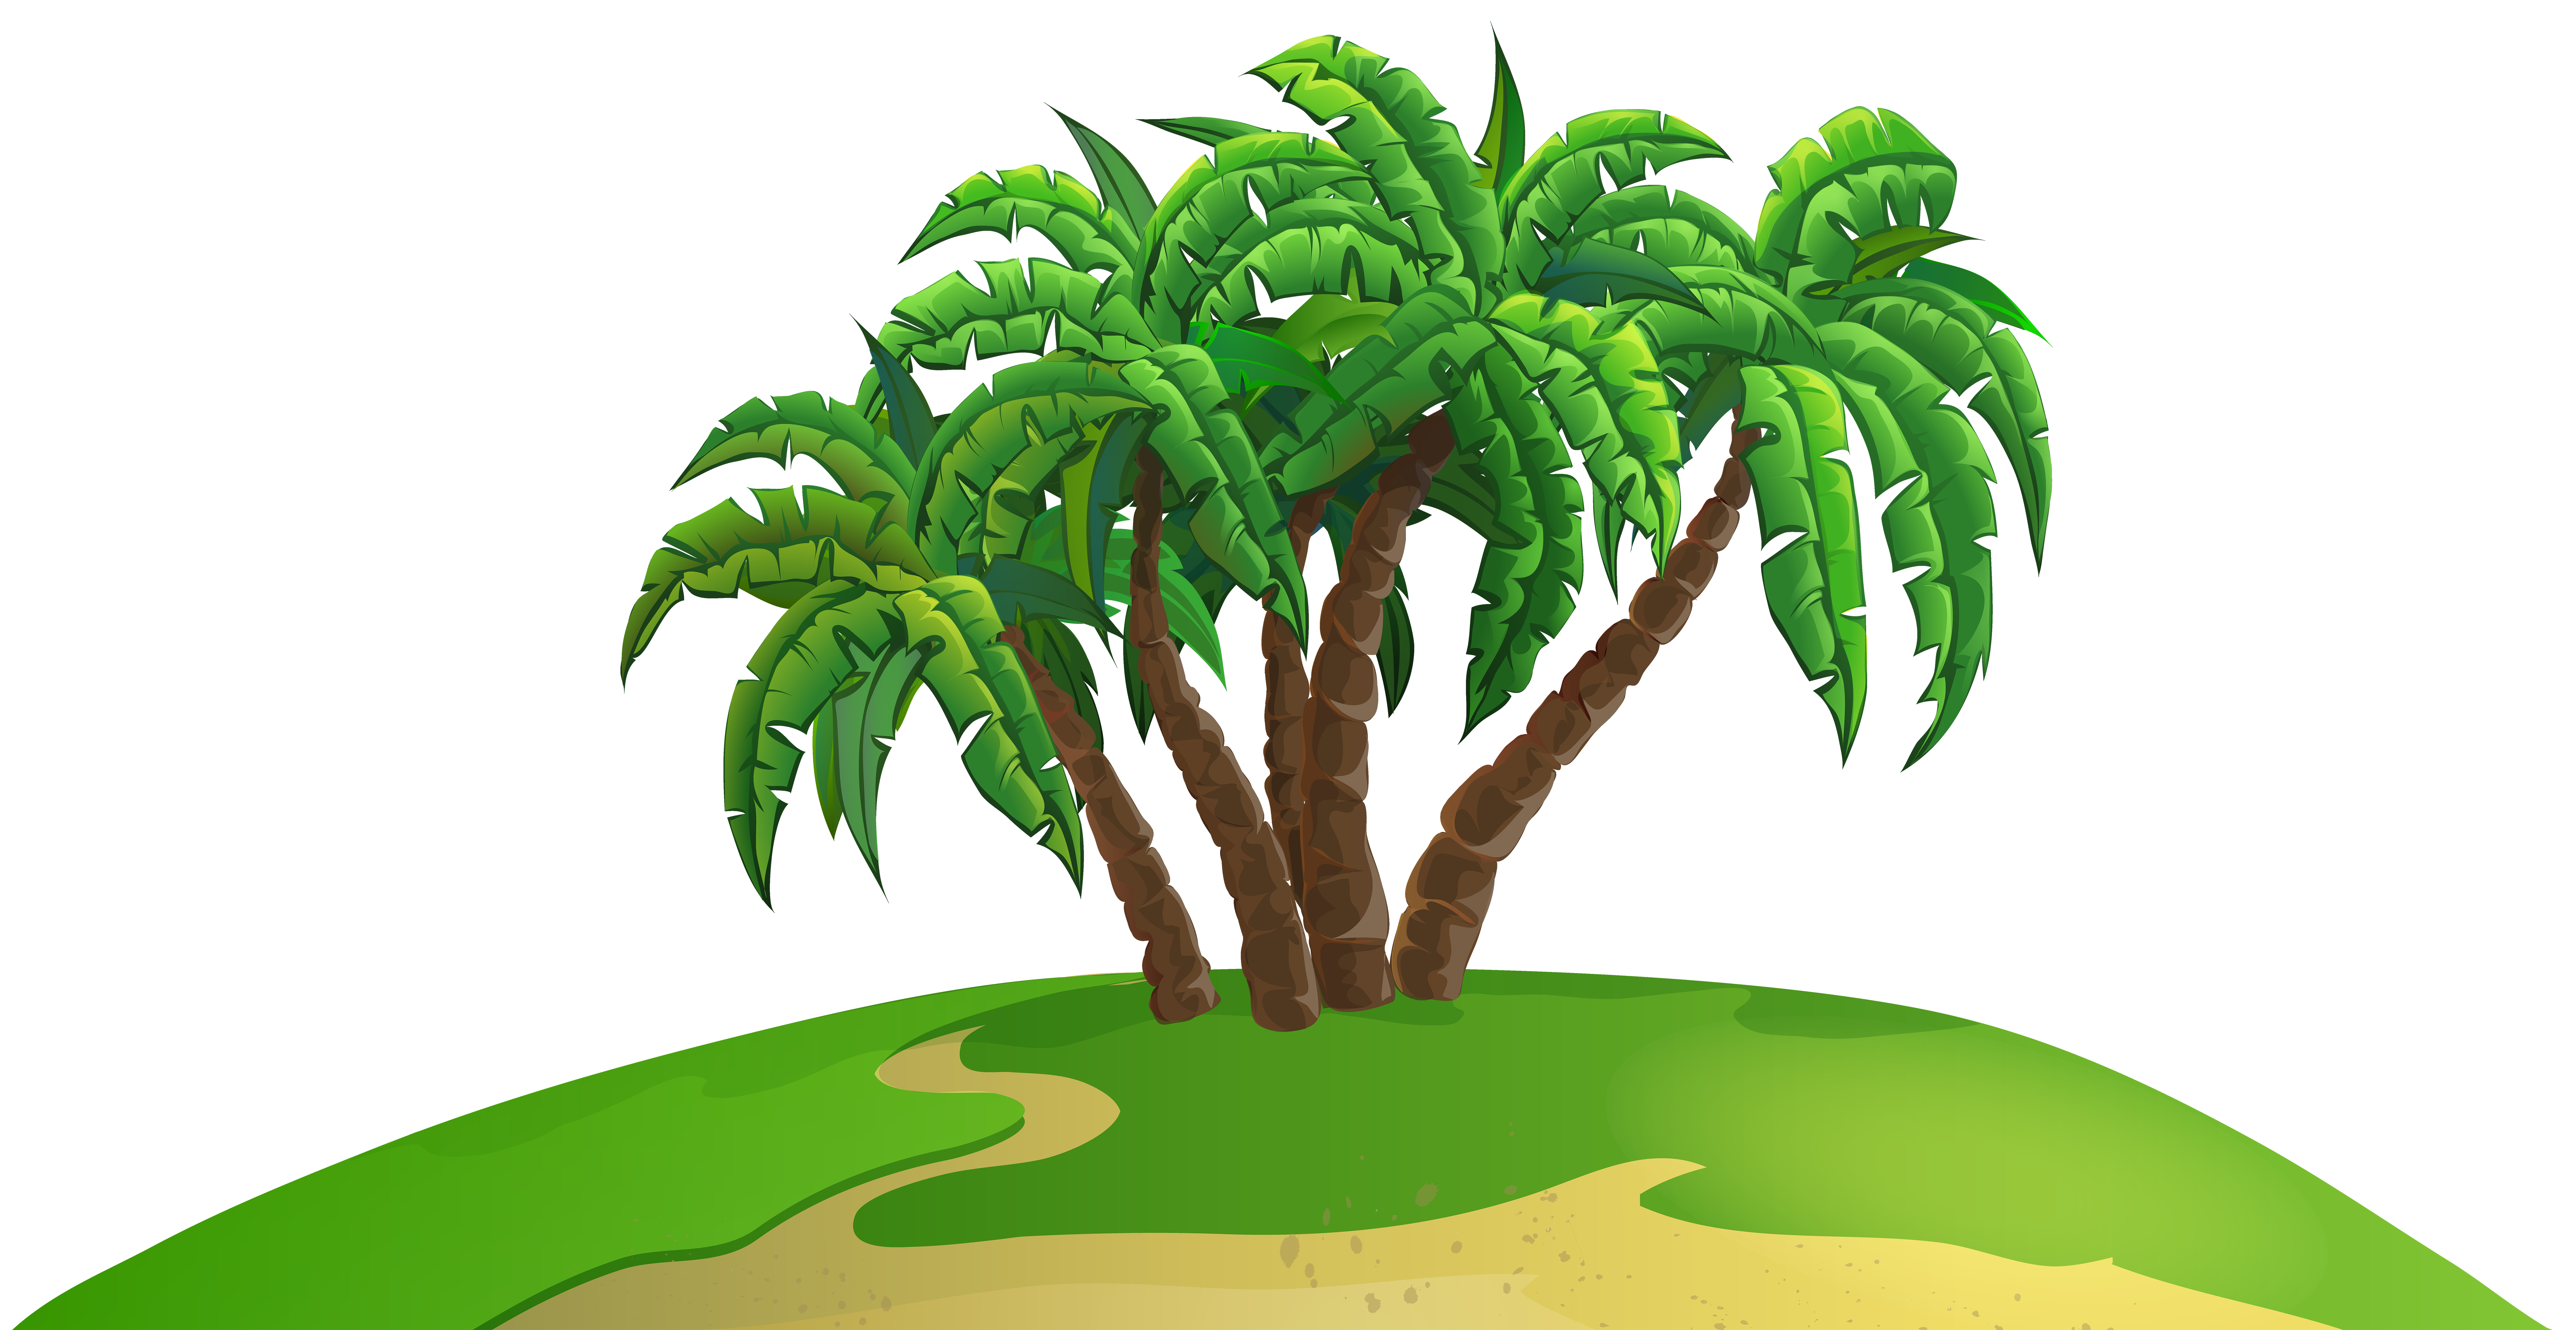 Island clipart png. Palm clip art image